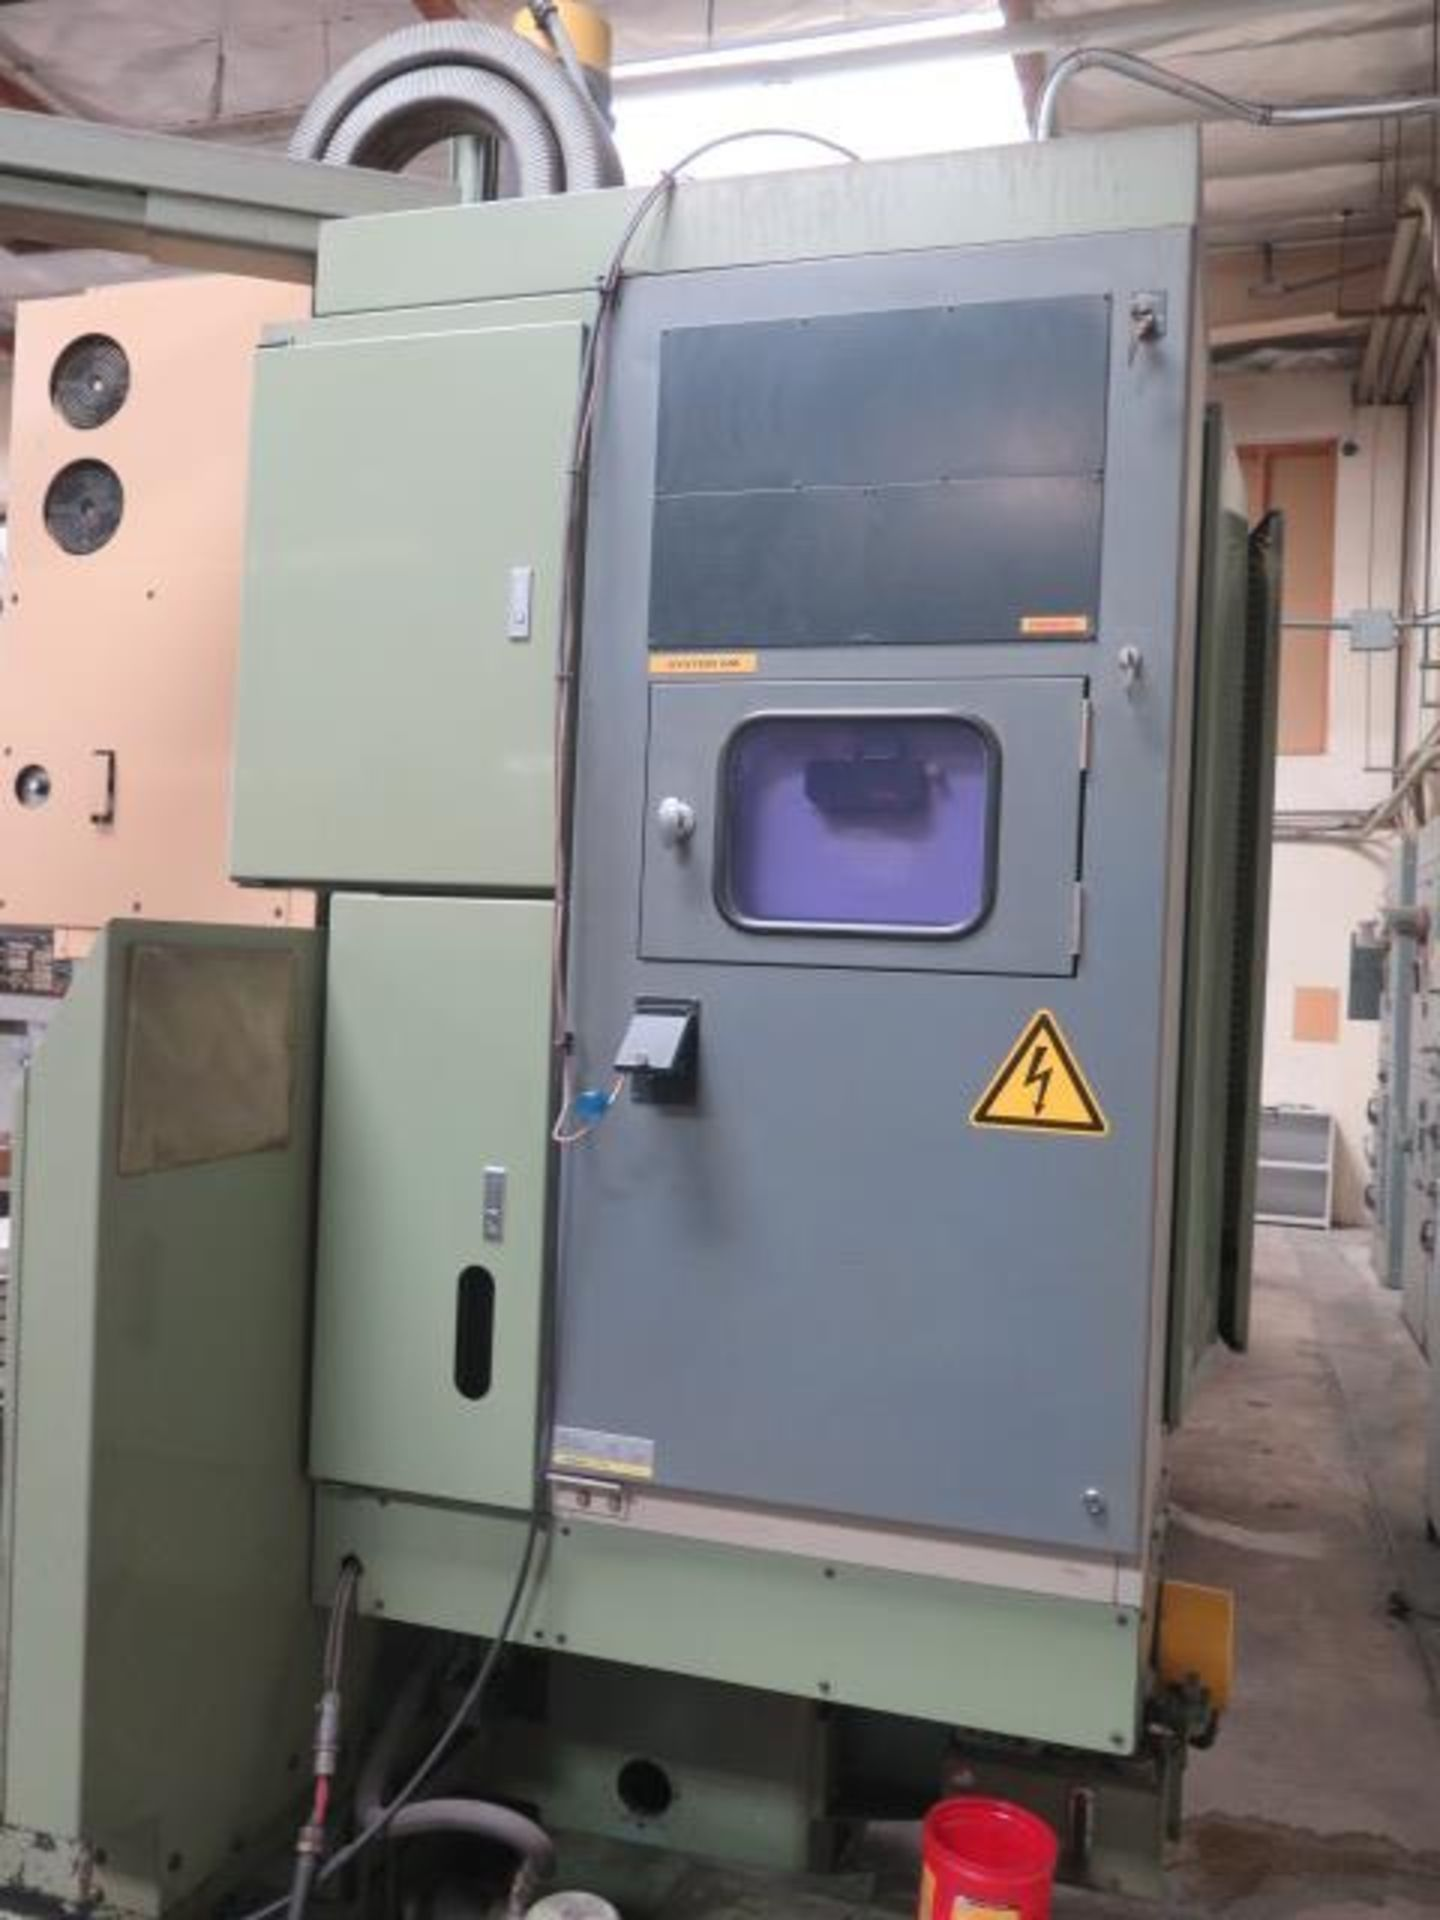 Mori Seiki MV-45/40 CNC VMC s/n 467 w/ Fanuc System 6M Controls, 20 ATC, SOLD AS IS - Image 12 of 14